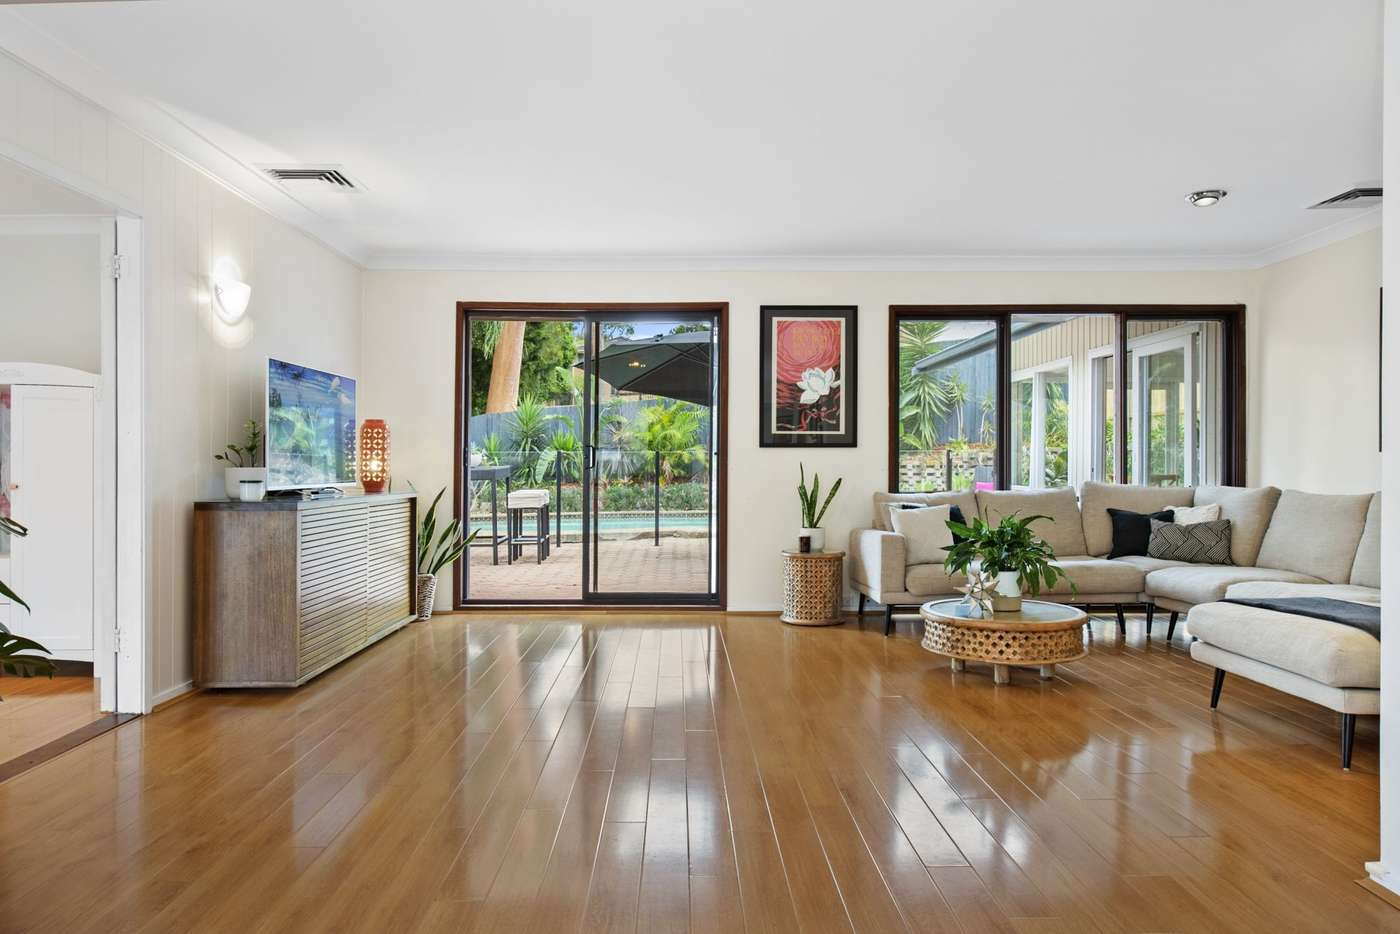 Sixth view of Homely house listing, 52 Nicholson Avenue, Thornleigh NSW 2120